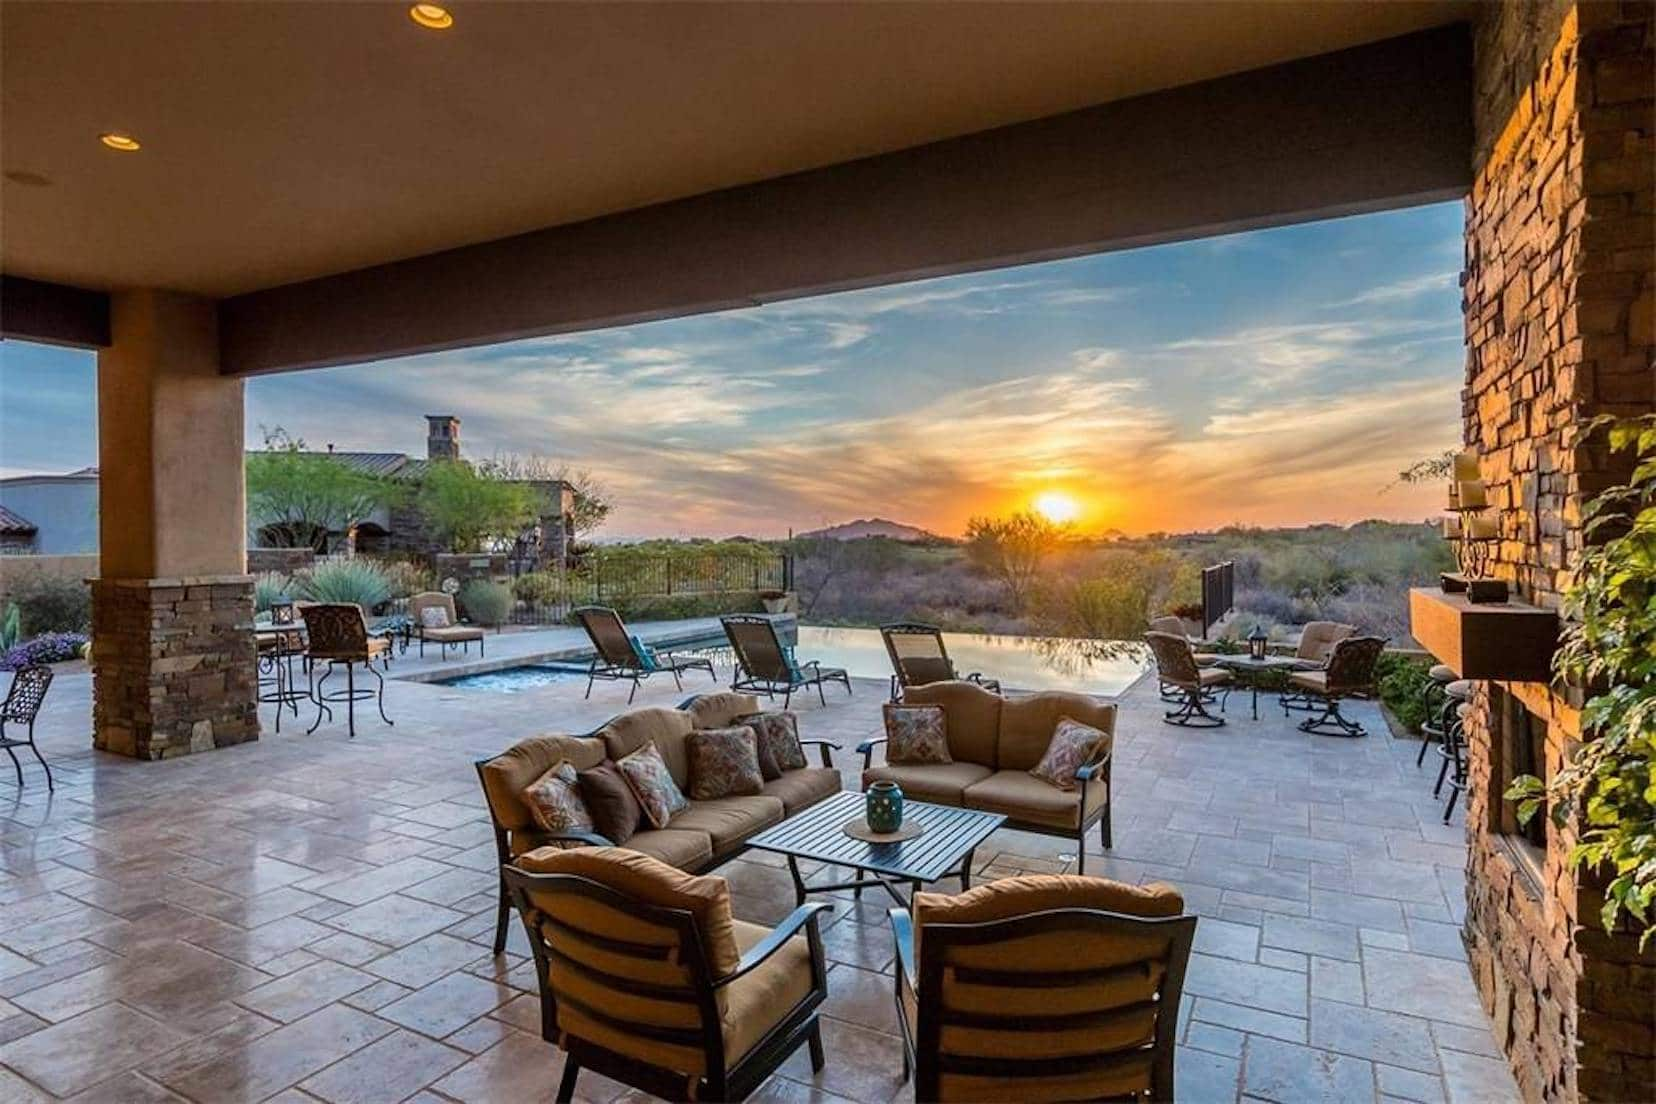 Trade-in #4: a private golf course amidst the high Sonoran desert (4-bedroom house included)